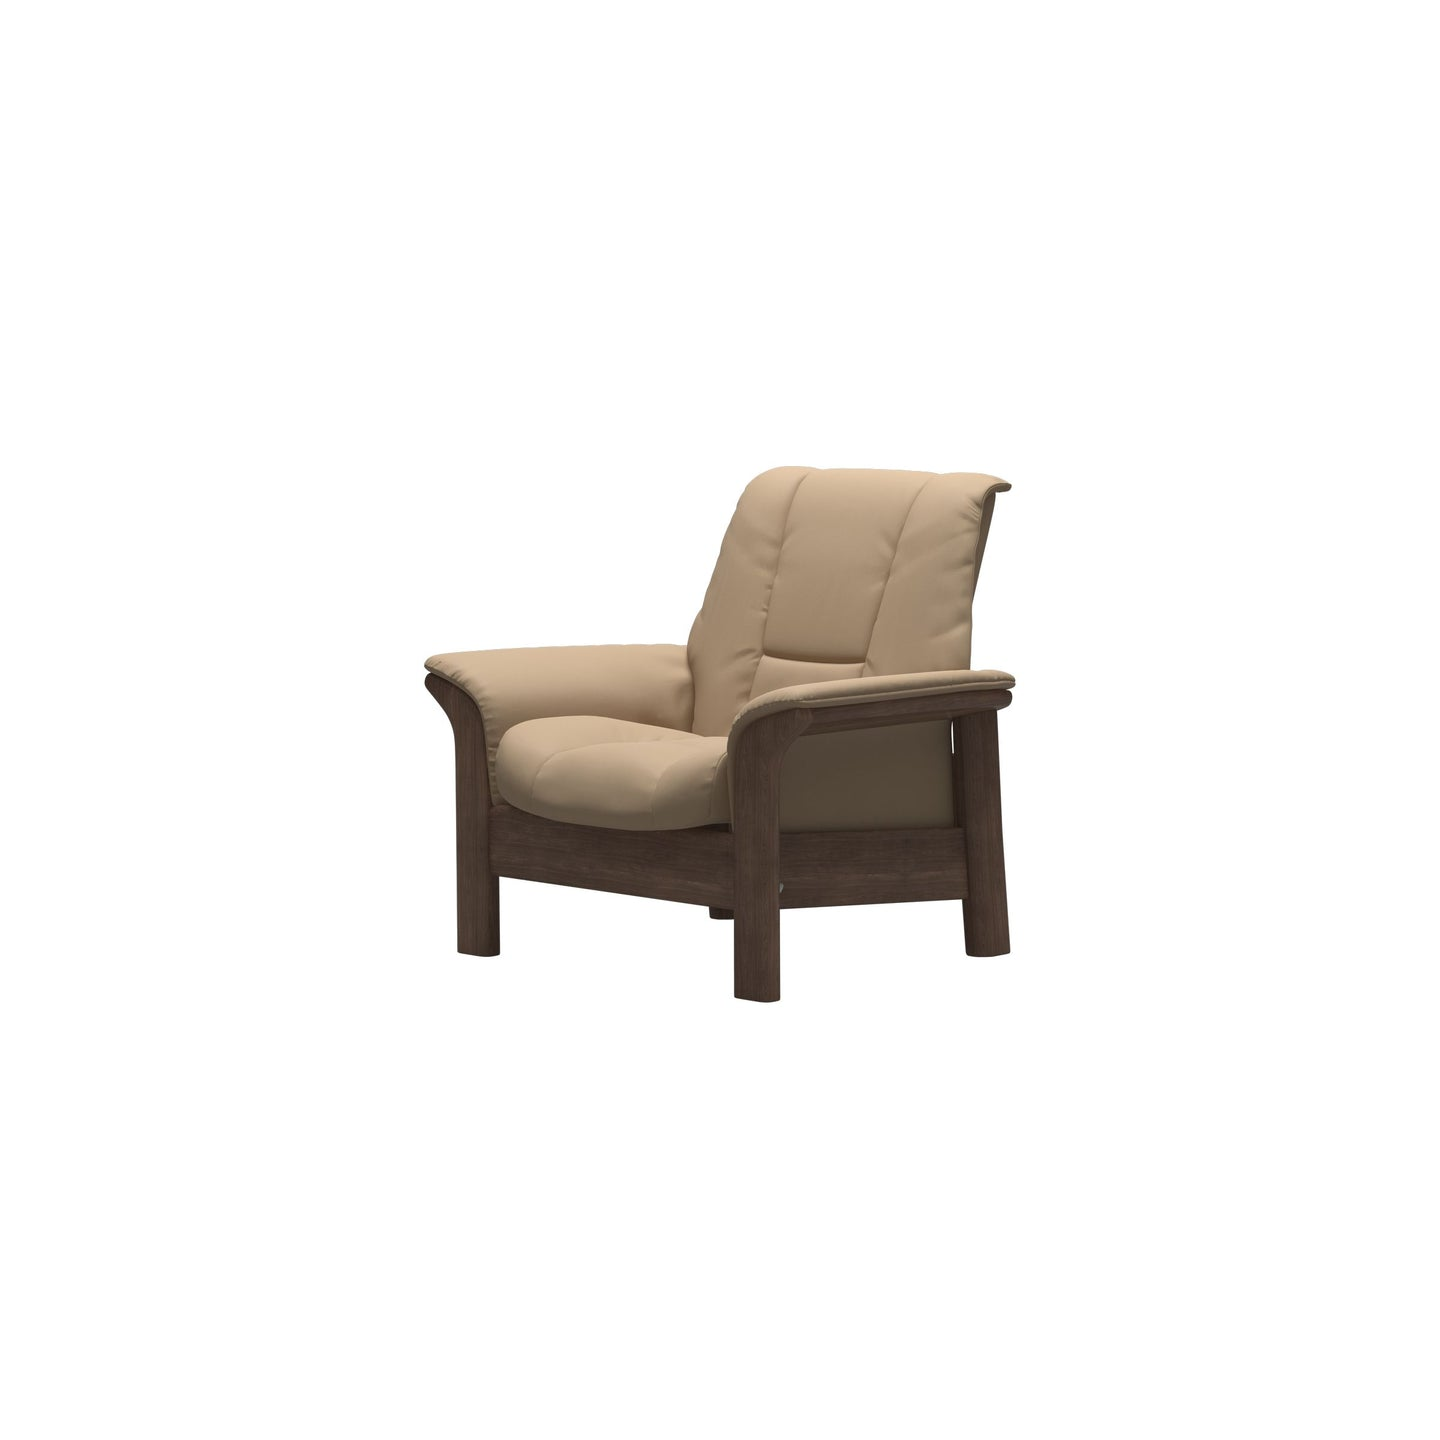 Stressless® Windsor (M) chair Low back